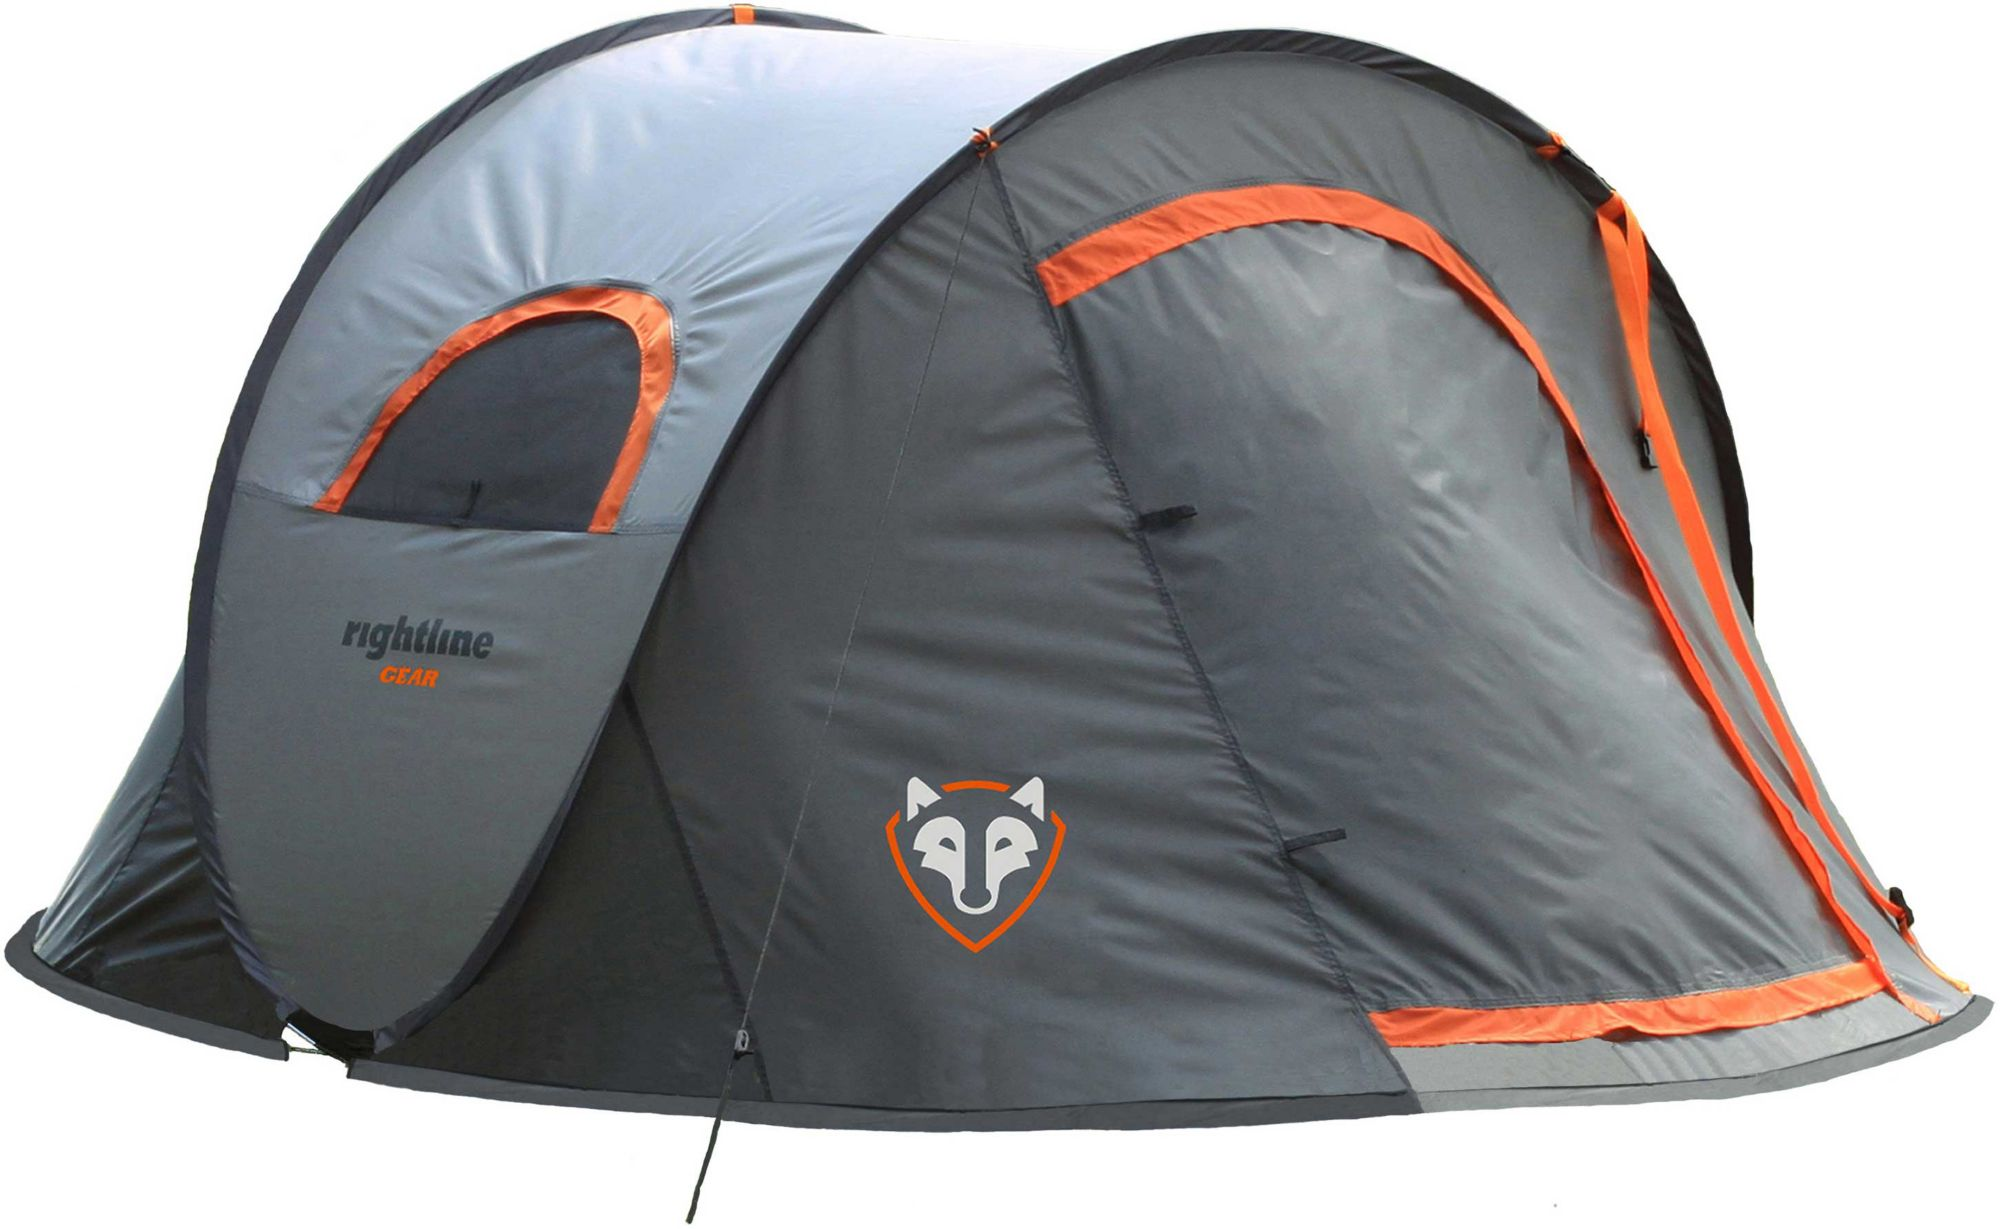 noImageFound ???  sc 1 st  DICKu0027S Sporting Goods & Rightline Gear 2 Person Pop Up Tent | DICKu0027S Sporting Goods